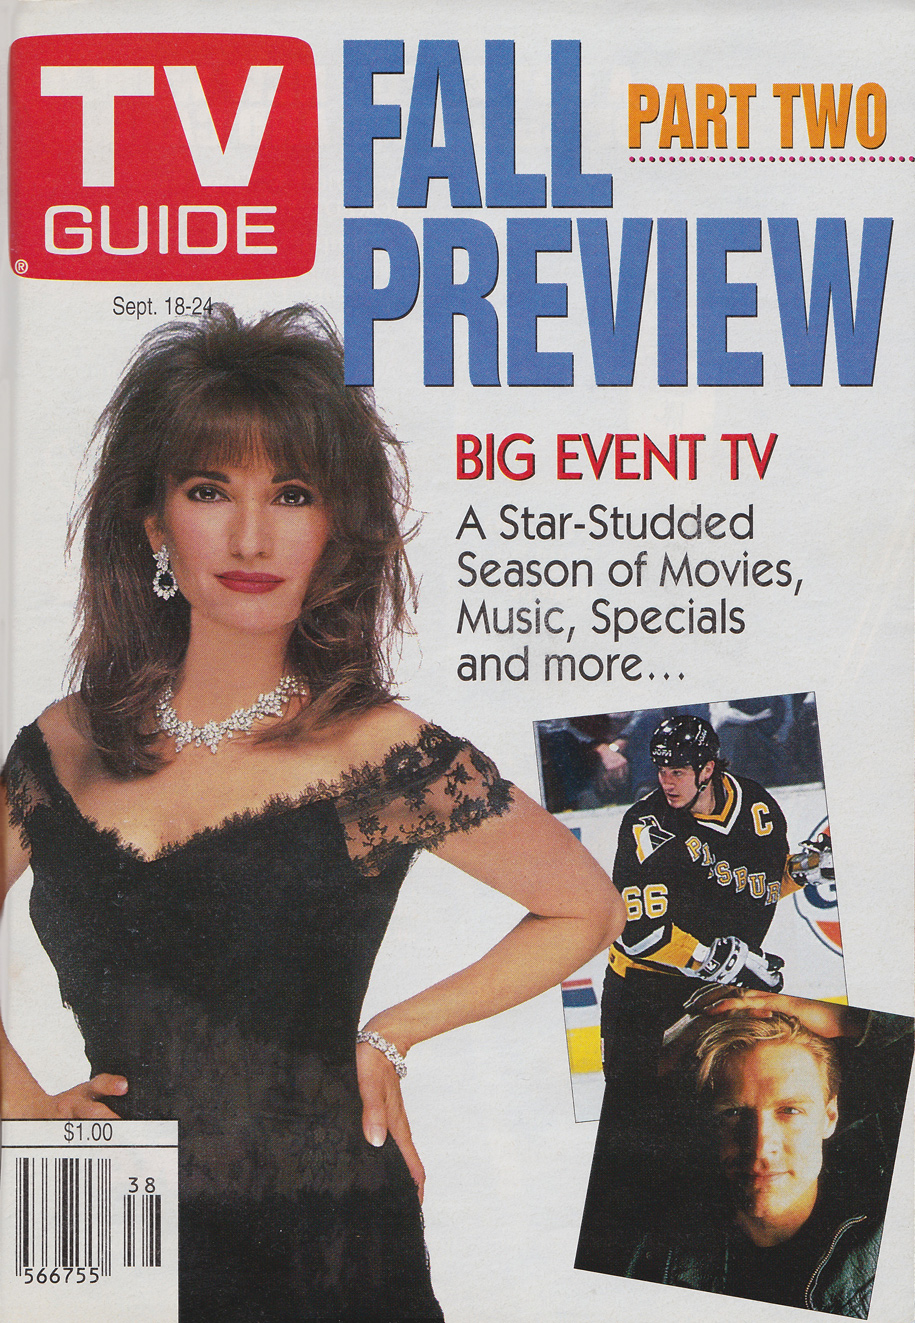 TV Guide September 18 1993 Western Ontario Edition Front Cover